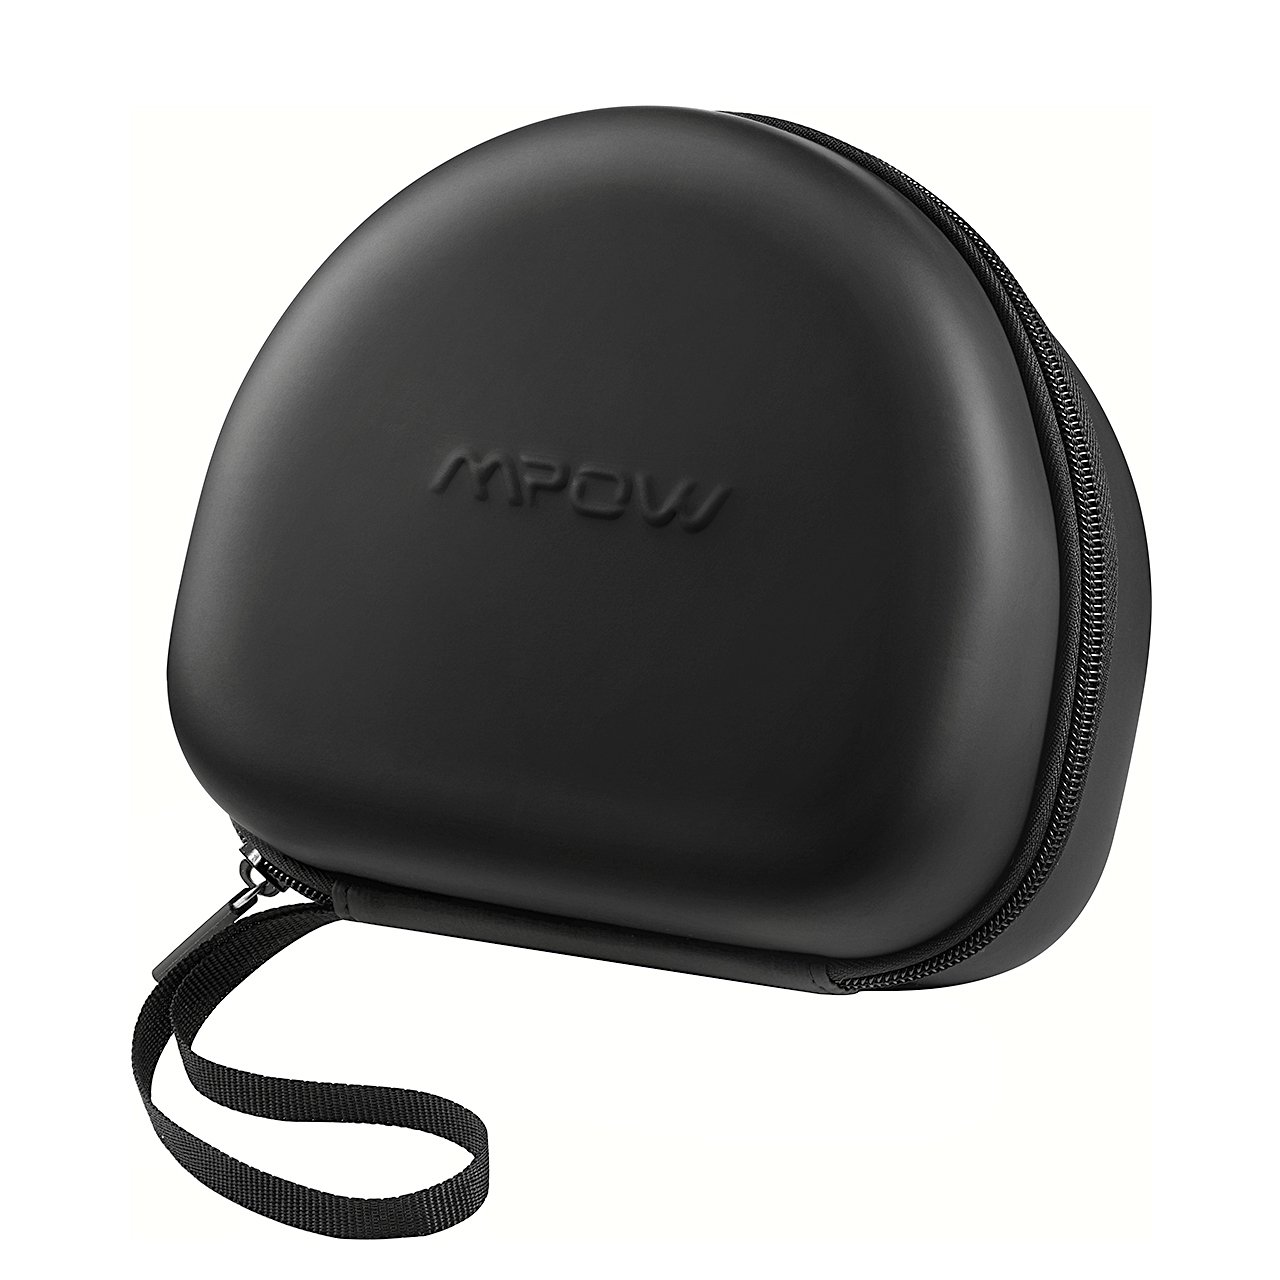 Mpow Earmuff Case for Mpow 035/068/108 Noise Reduction Safety Ear Muffs, Hard Travel Case EVA Hardshell for Mpow 059/H1/H2/H5 Foldable Headphone, Travel Carrying Case with Mesh Pocket for Accessories